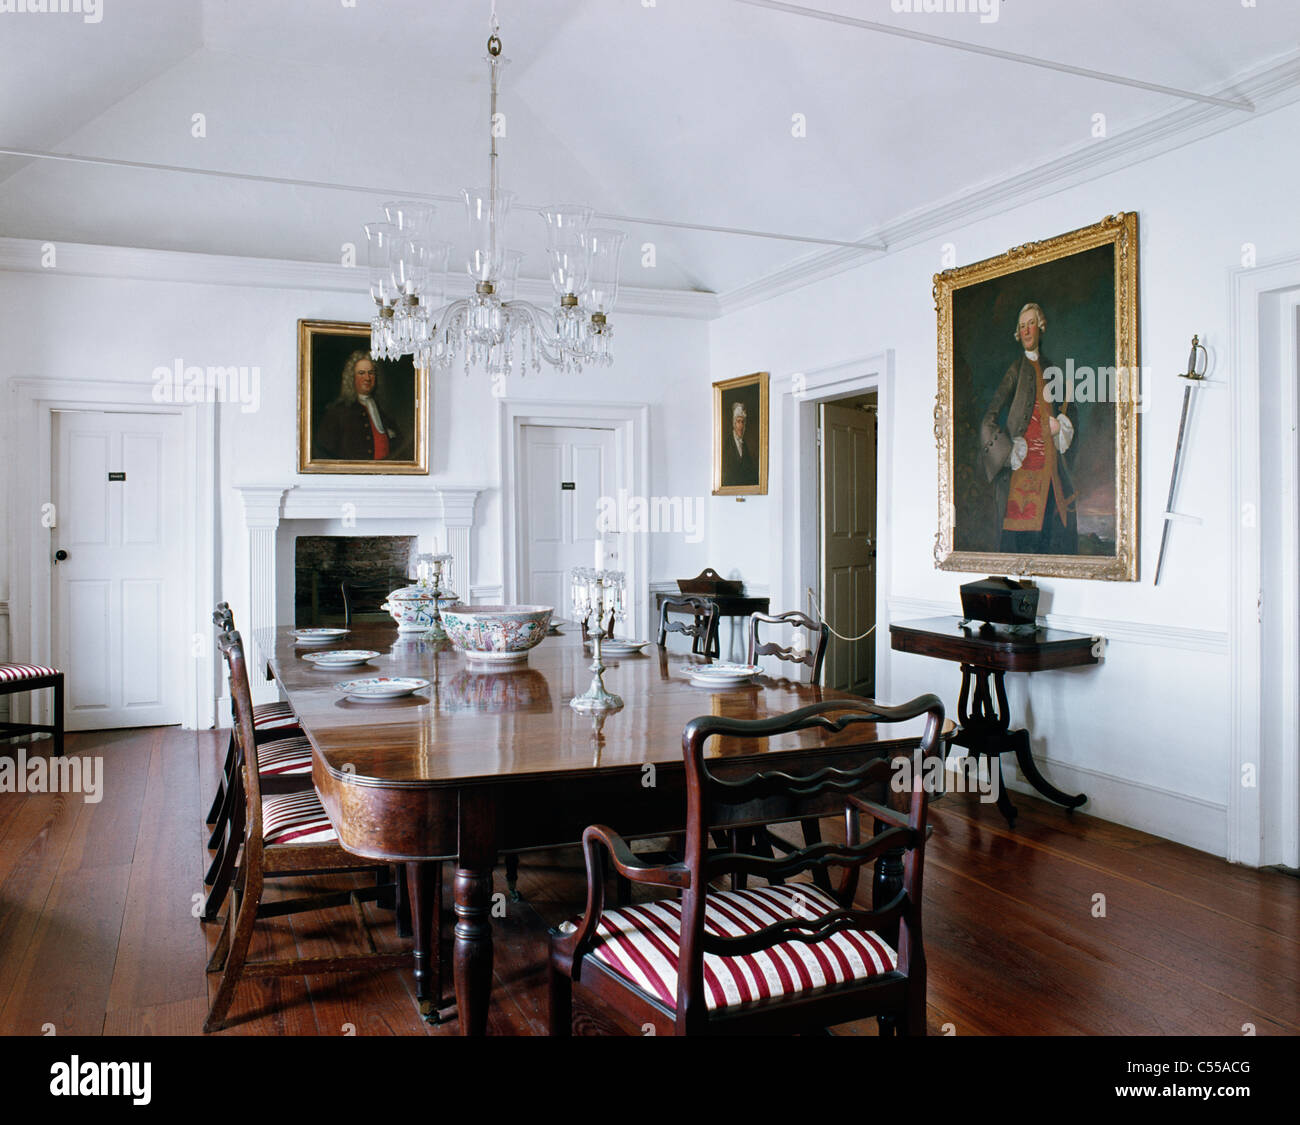 Superieur Dining Room Henry Tucker House St. George Bermuda